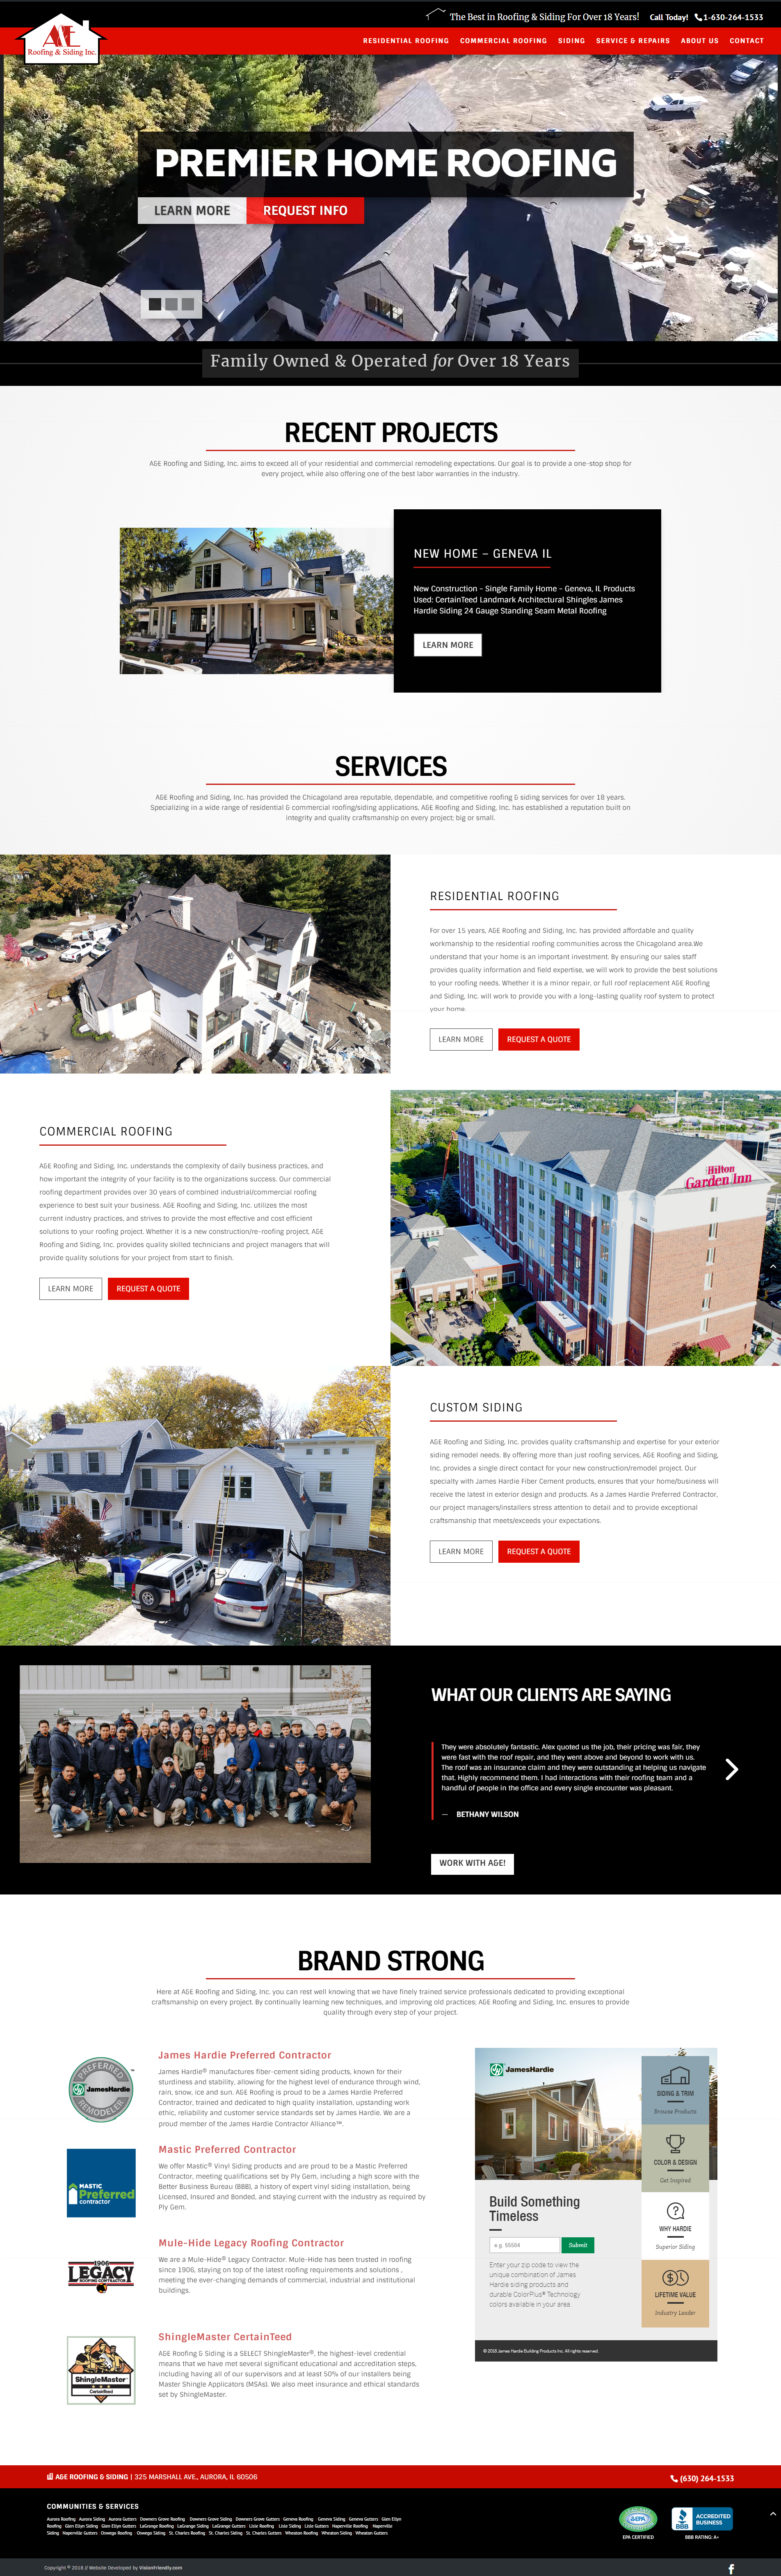 Website Design For A E Roofing Siding By Visionfriendly Com Fullwidth Responsive Industrial Webdesign Webdevelopment Roofing Digital Design Web Design